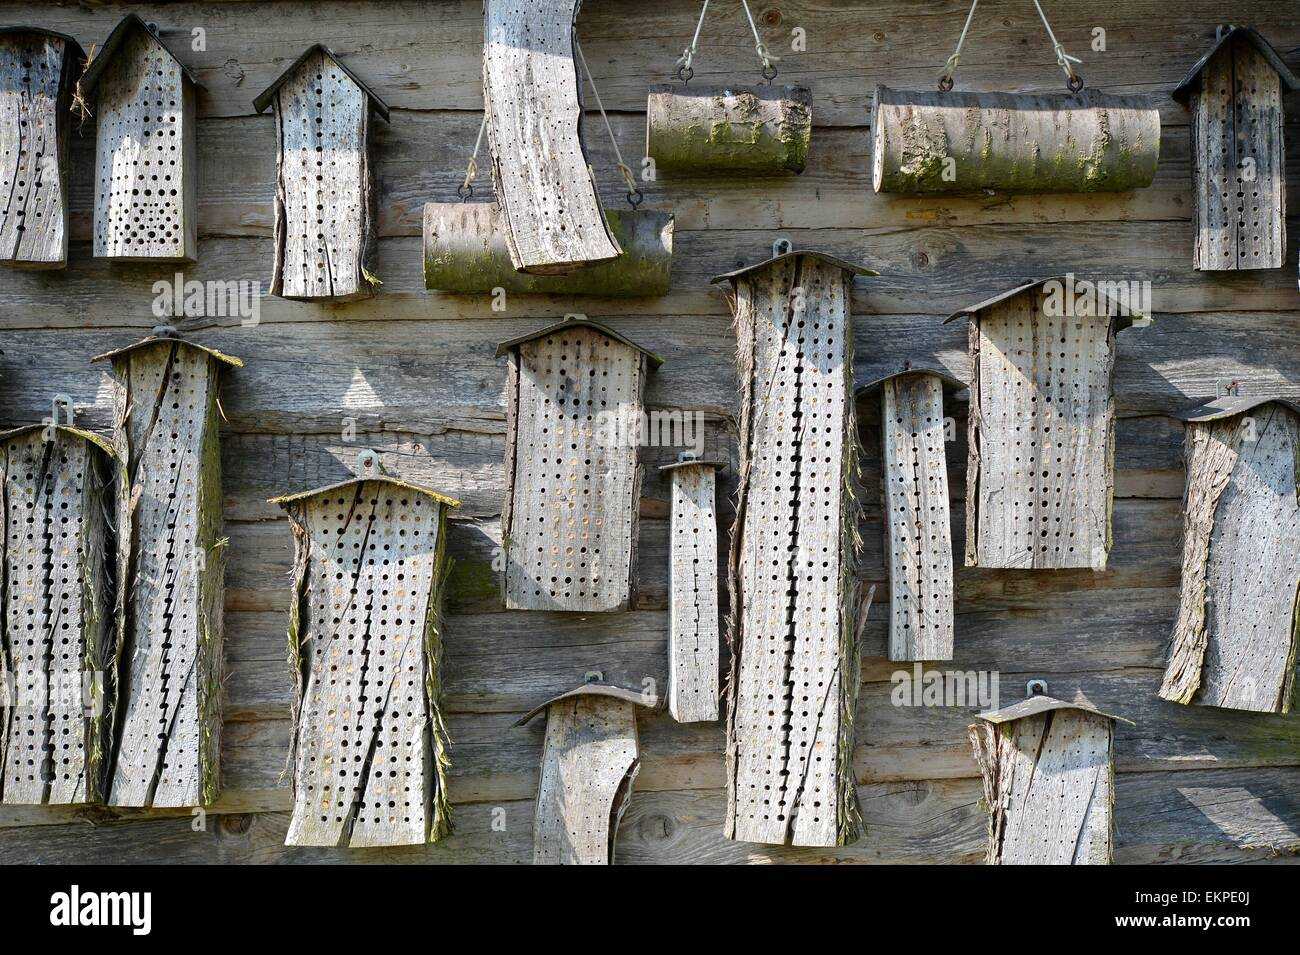 Bug hotel, Germany, city of Osterode, 10. April 2015. Photo: Frank May/picture alliance Stock Photo